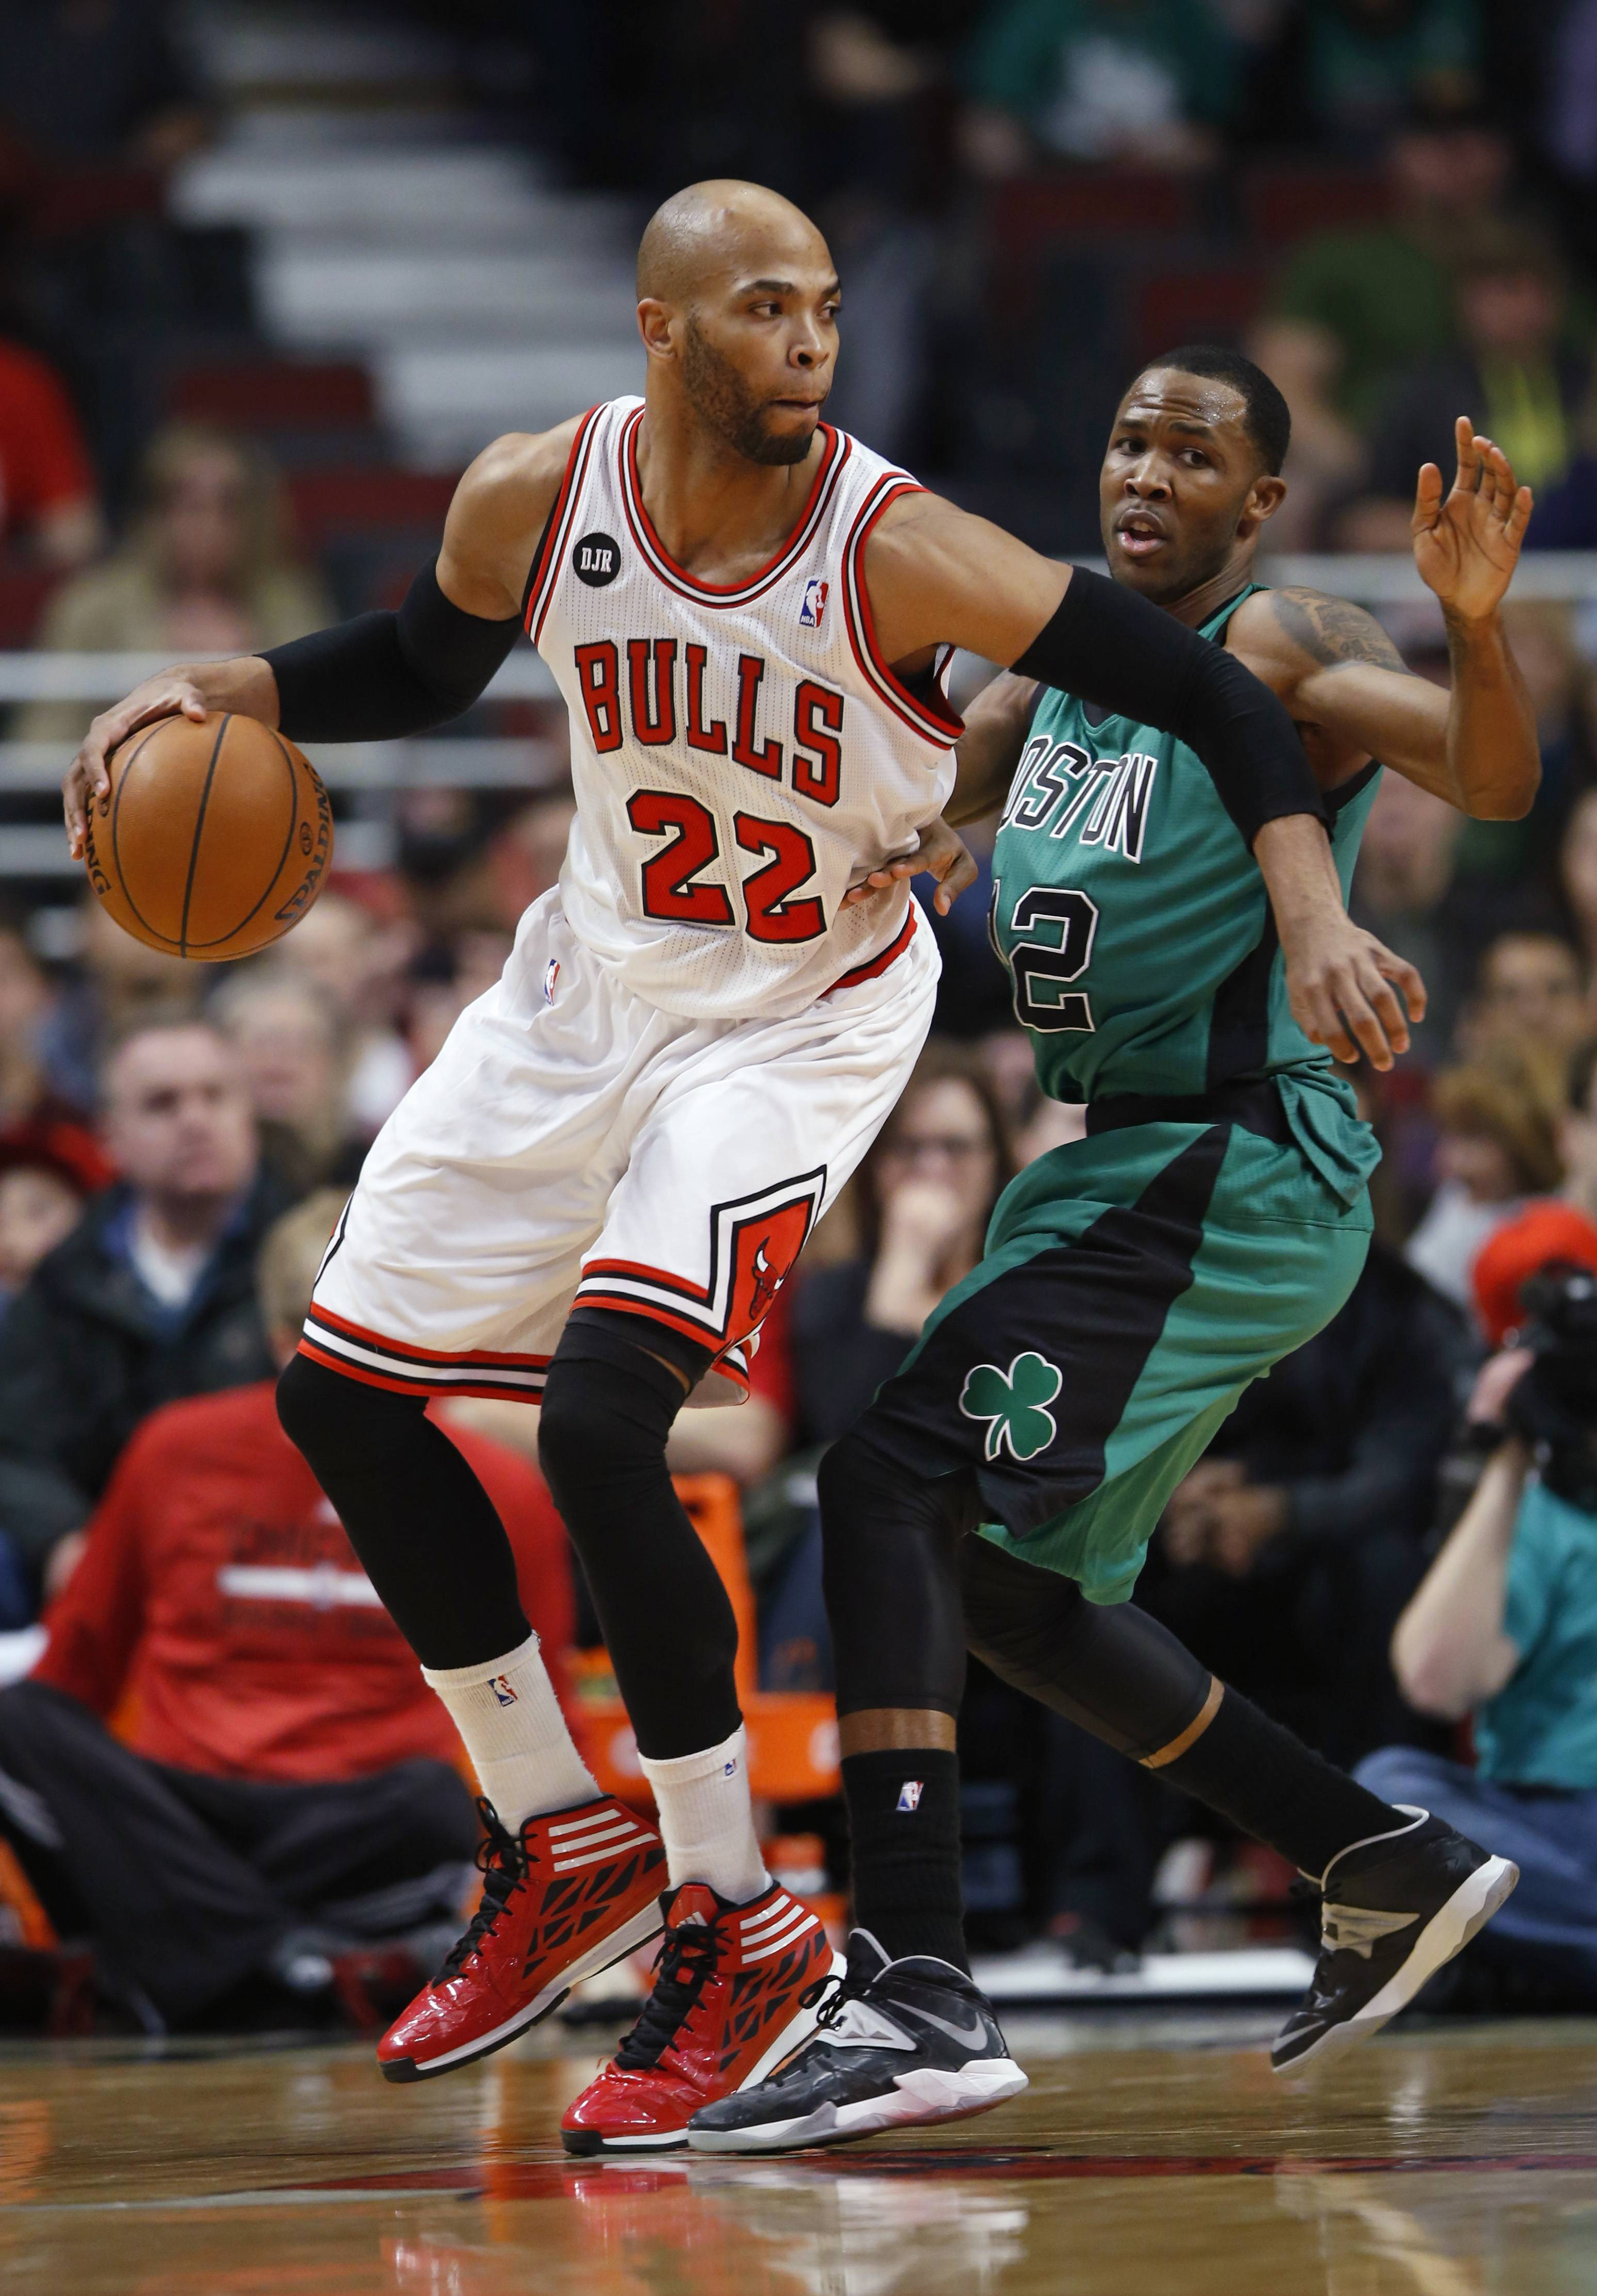 Bulls forward Taj Gibson, left, looks to pass the ball against Boston Celtics forward Chris Johnson, right, during the first half of an NBA basketball game in Chicago, Monday, March 31, 2014.